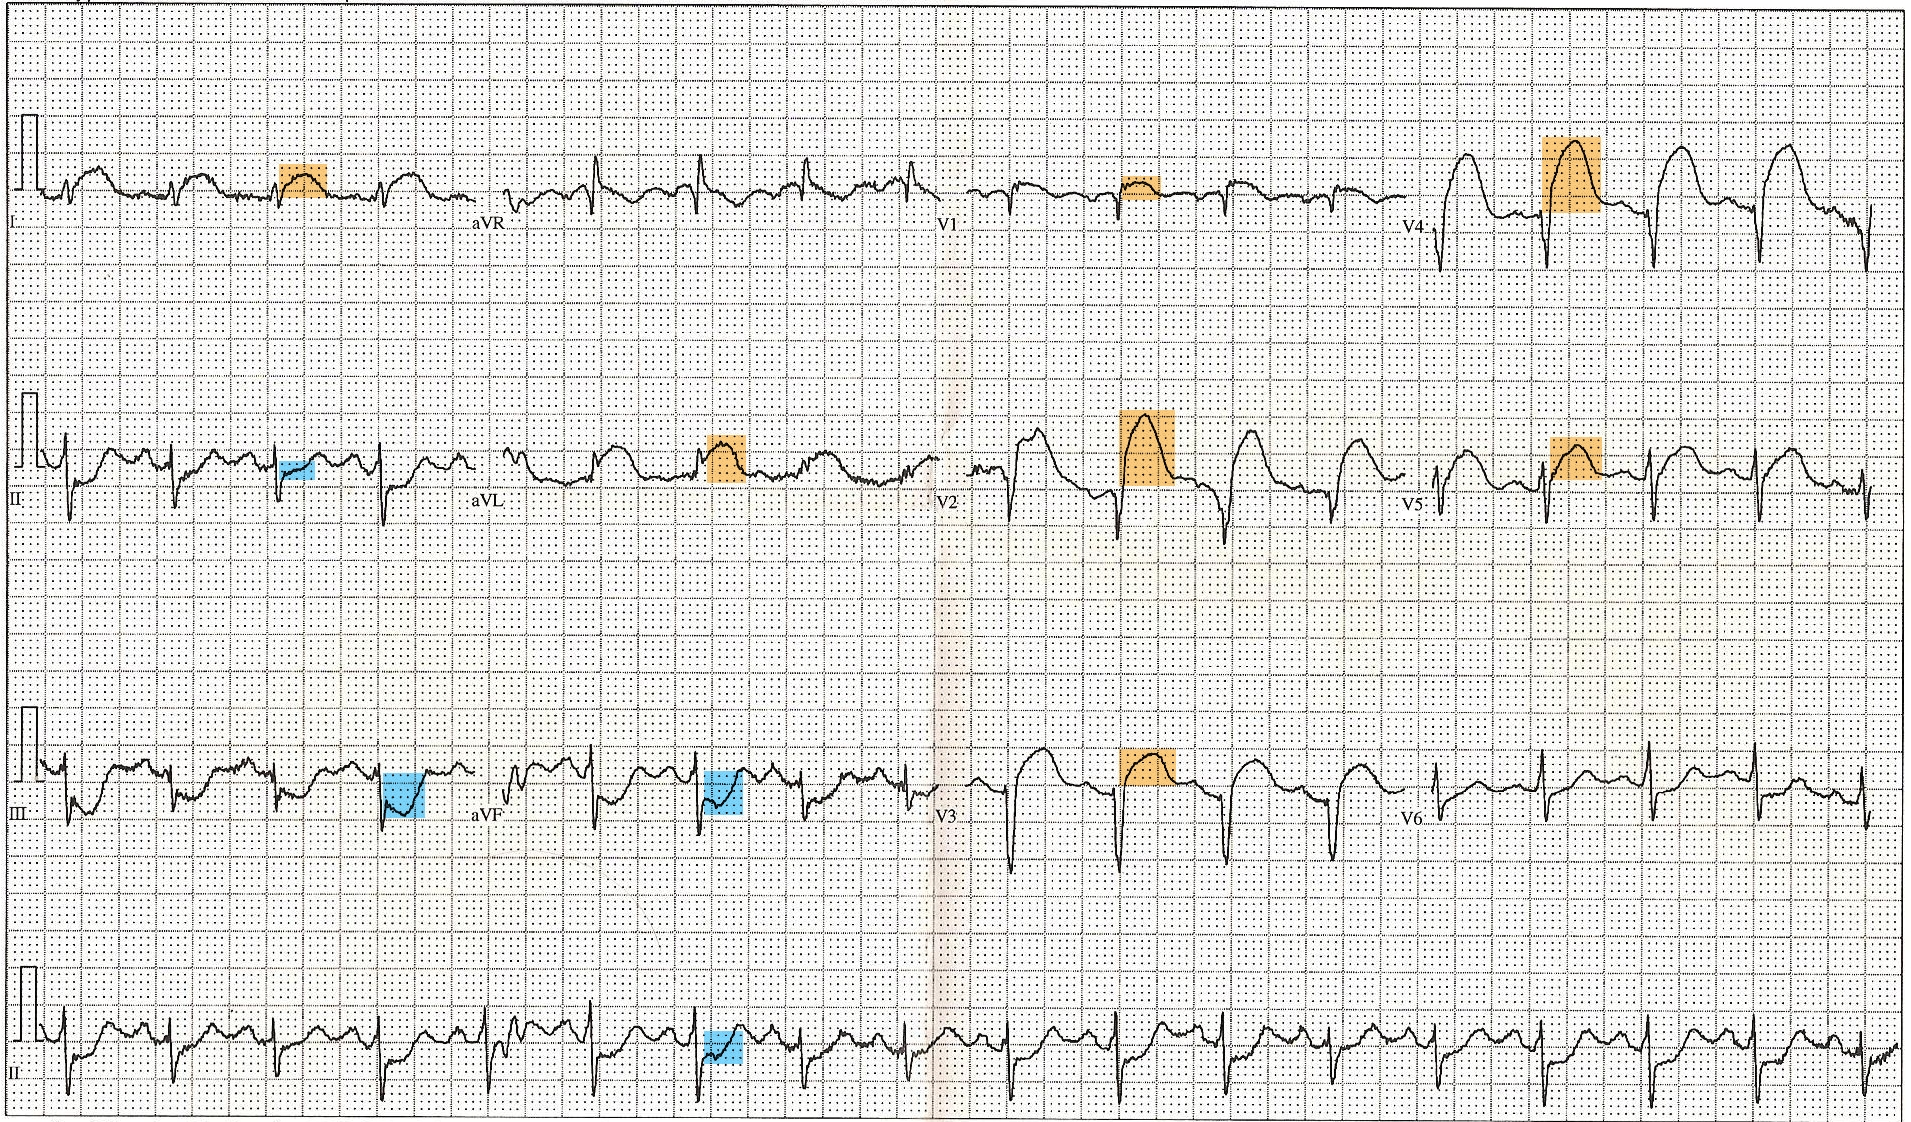 12 Lead ECG EKG showing ST Elevation (STEMI), Tachycardia, Anterior Fascicular Block, Anterior Infarct, Heart Attack. Color Key: ST Elevation in anterior leads=Orange, ST Depression in inferior leads=Blue